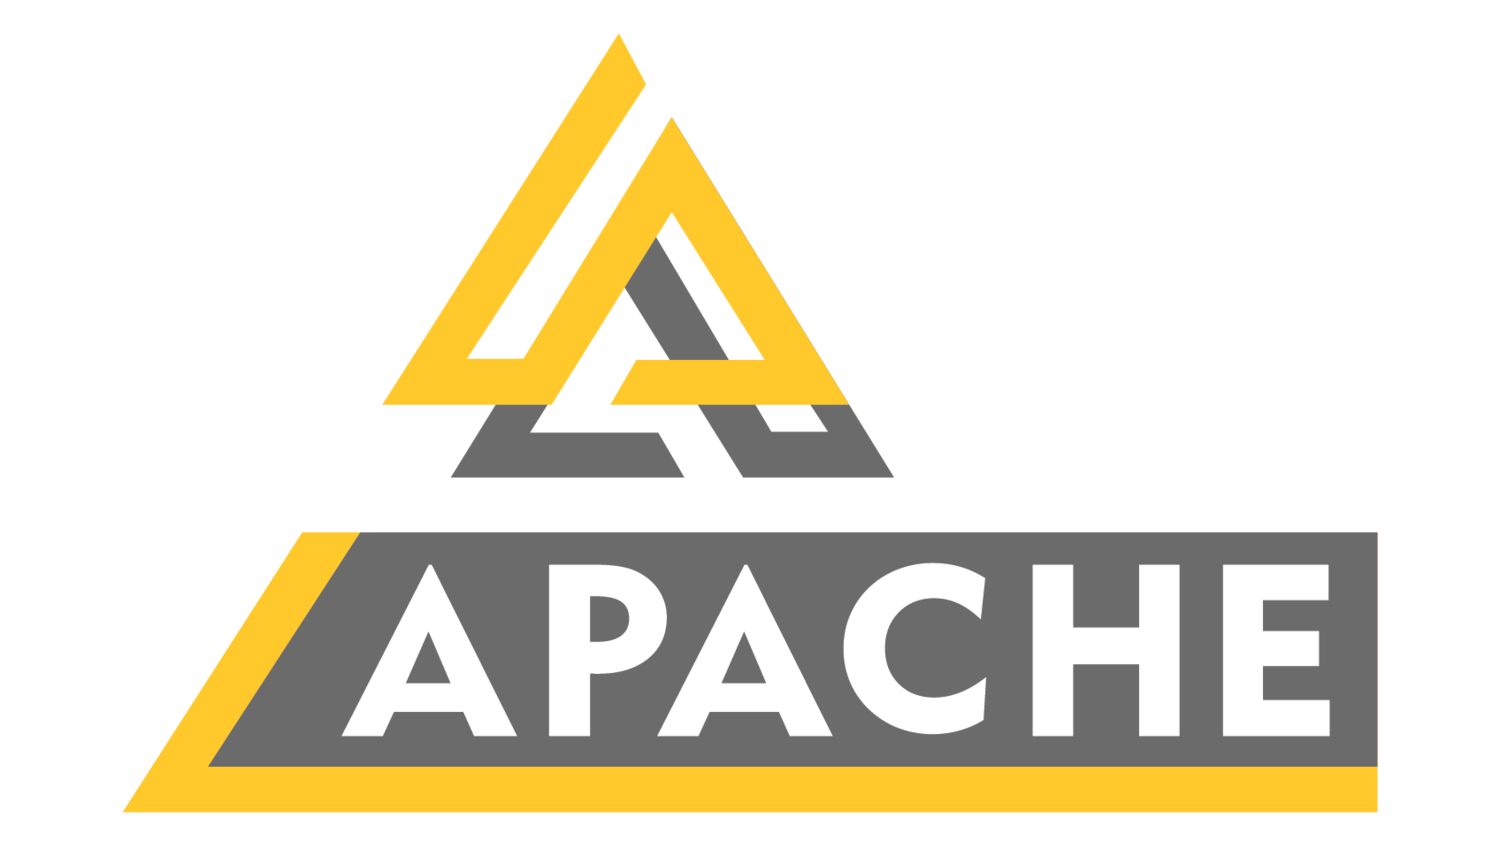 Apache Construction